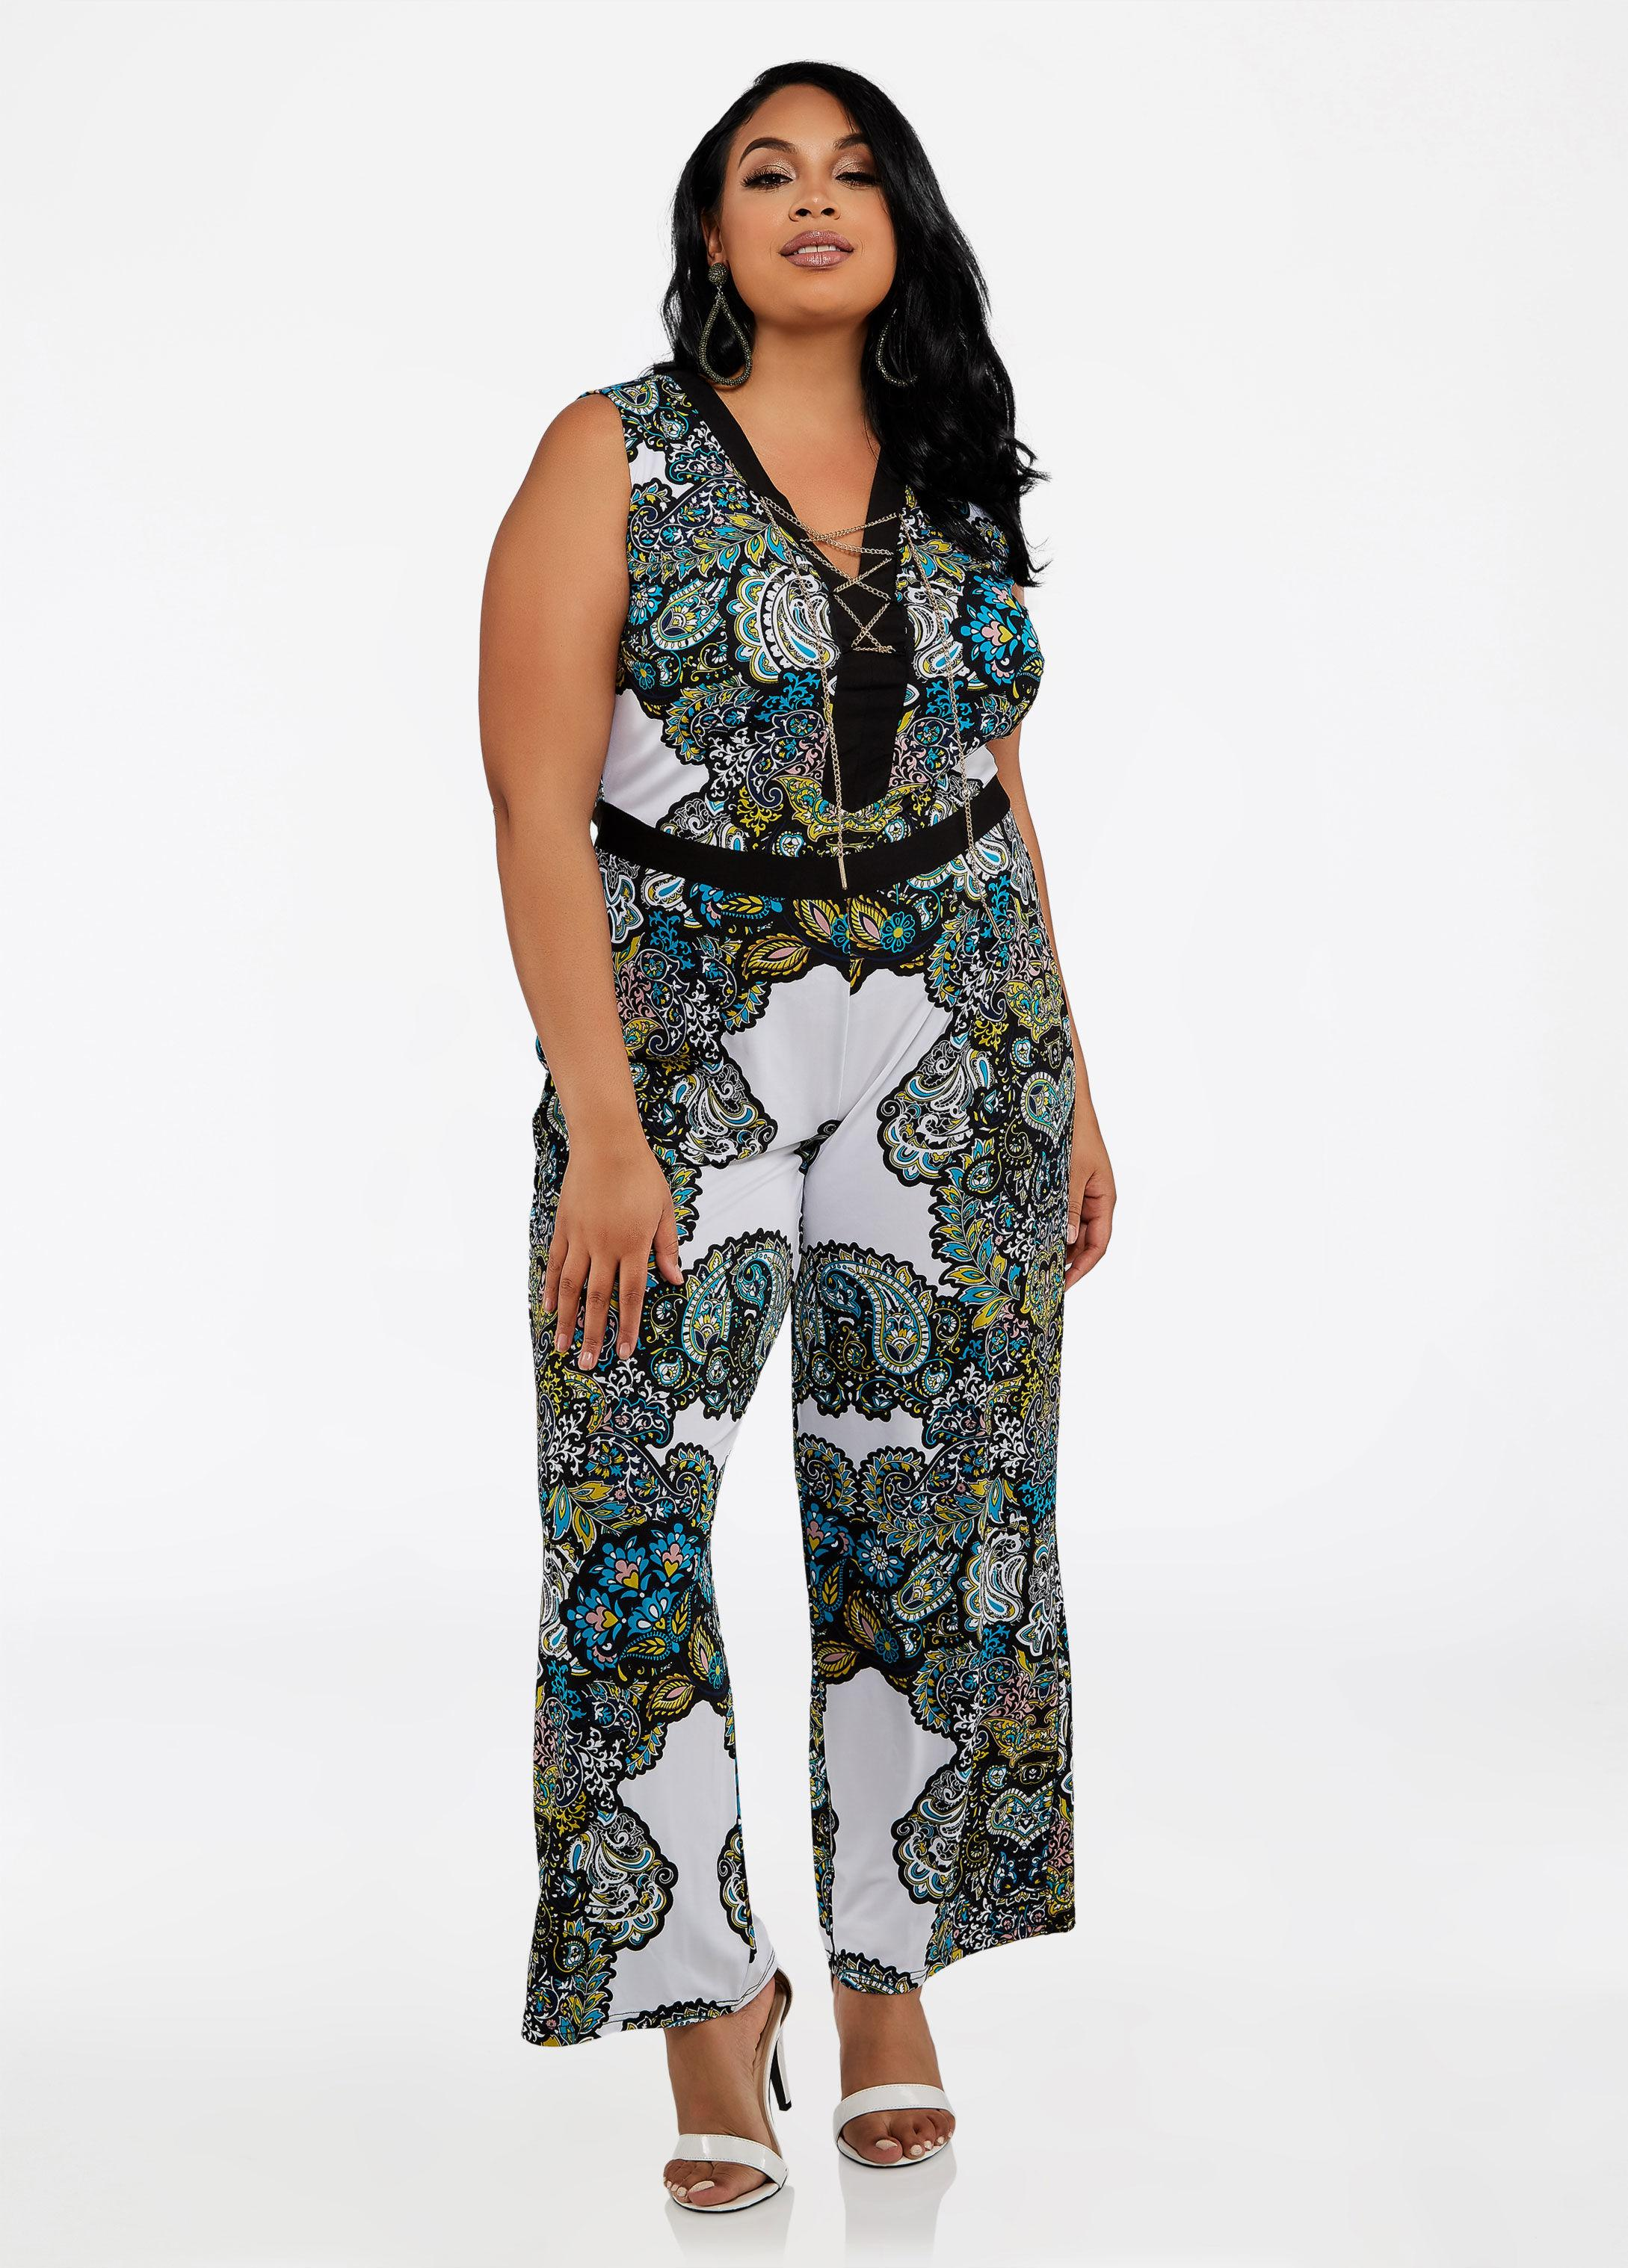 0aec8a5762e21 Lyst - Ashley Stewart Plus Size Chain Lace Up Print Jumpsuit in White